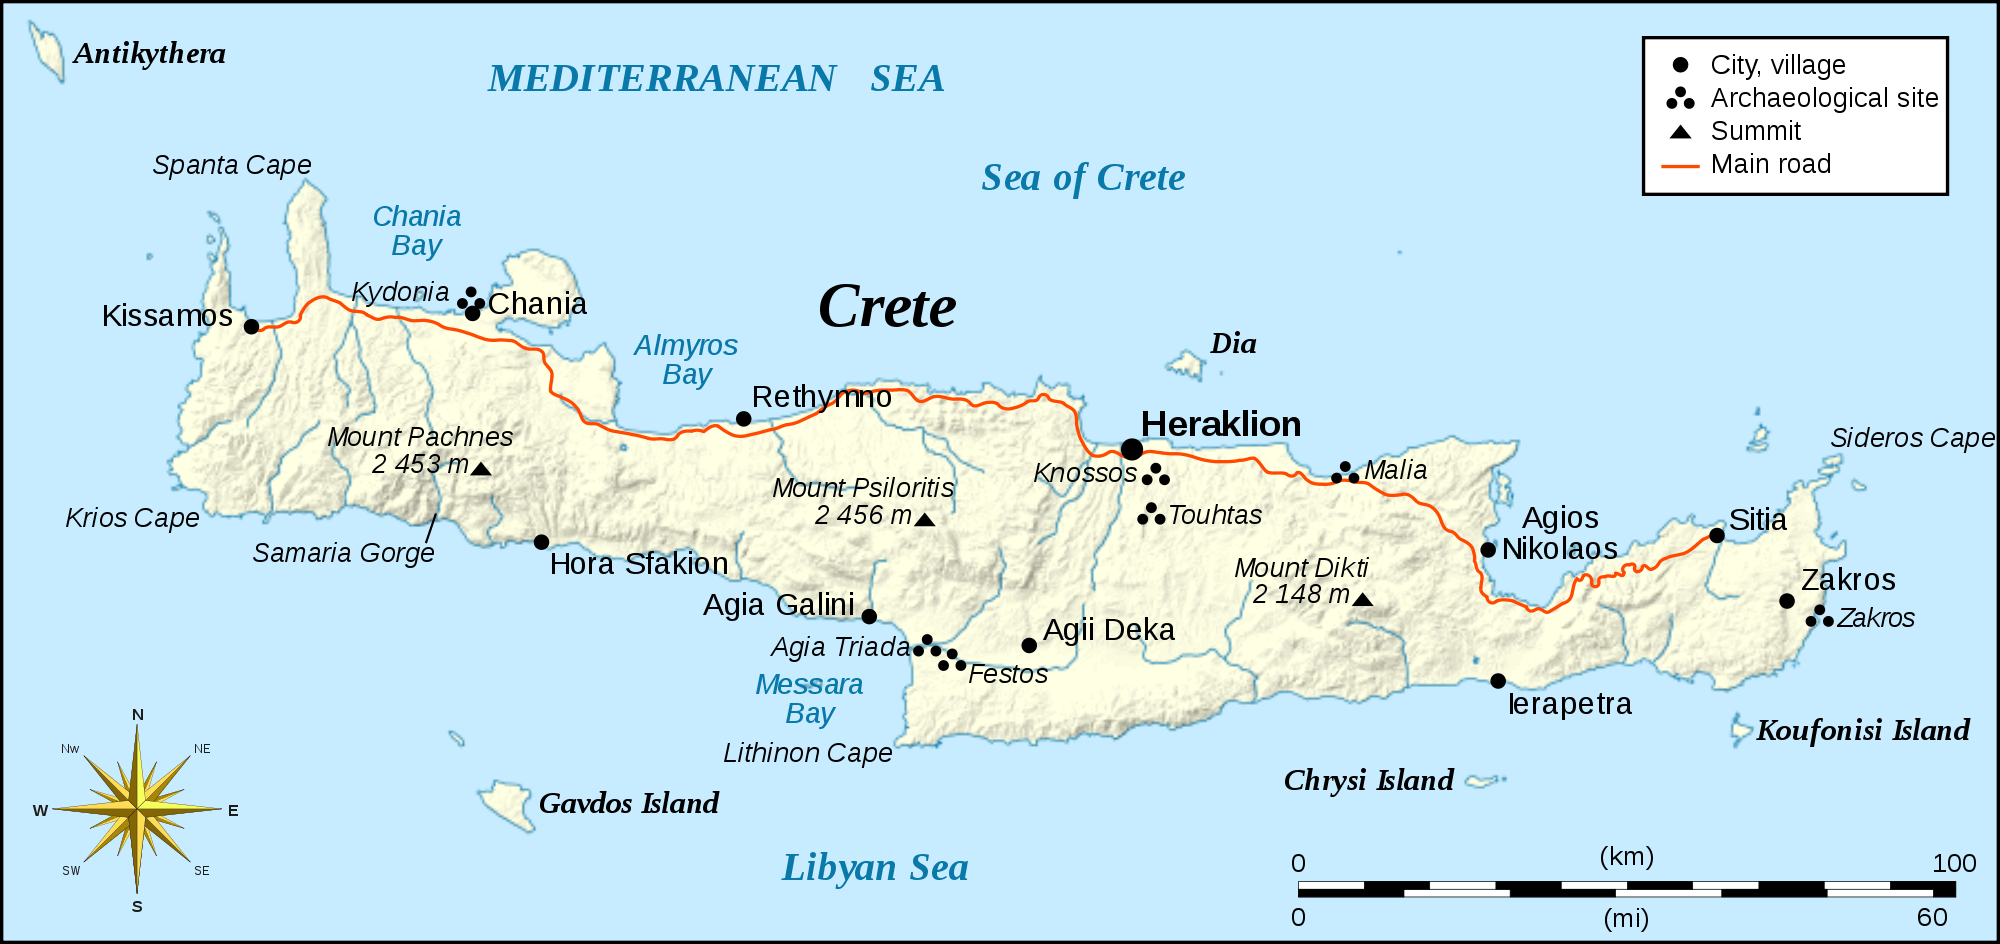 Crete is littered with historical sites and several of Greece's tallest mountains, which have a huge effect on the climate and culture